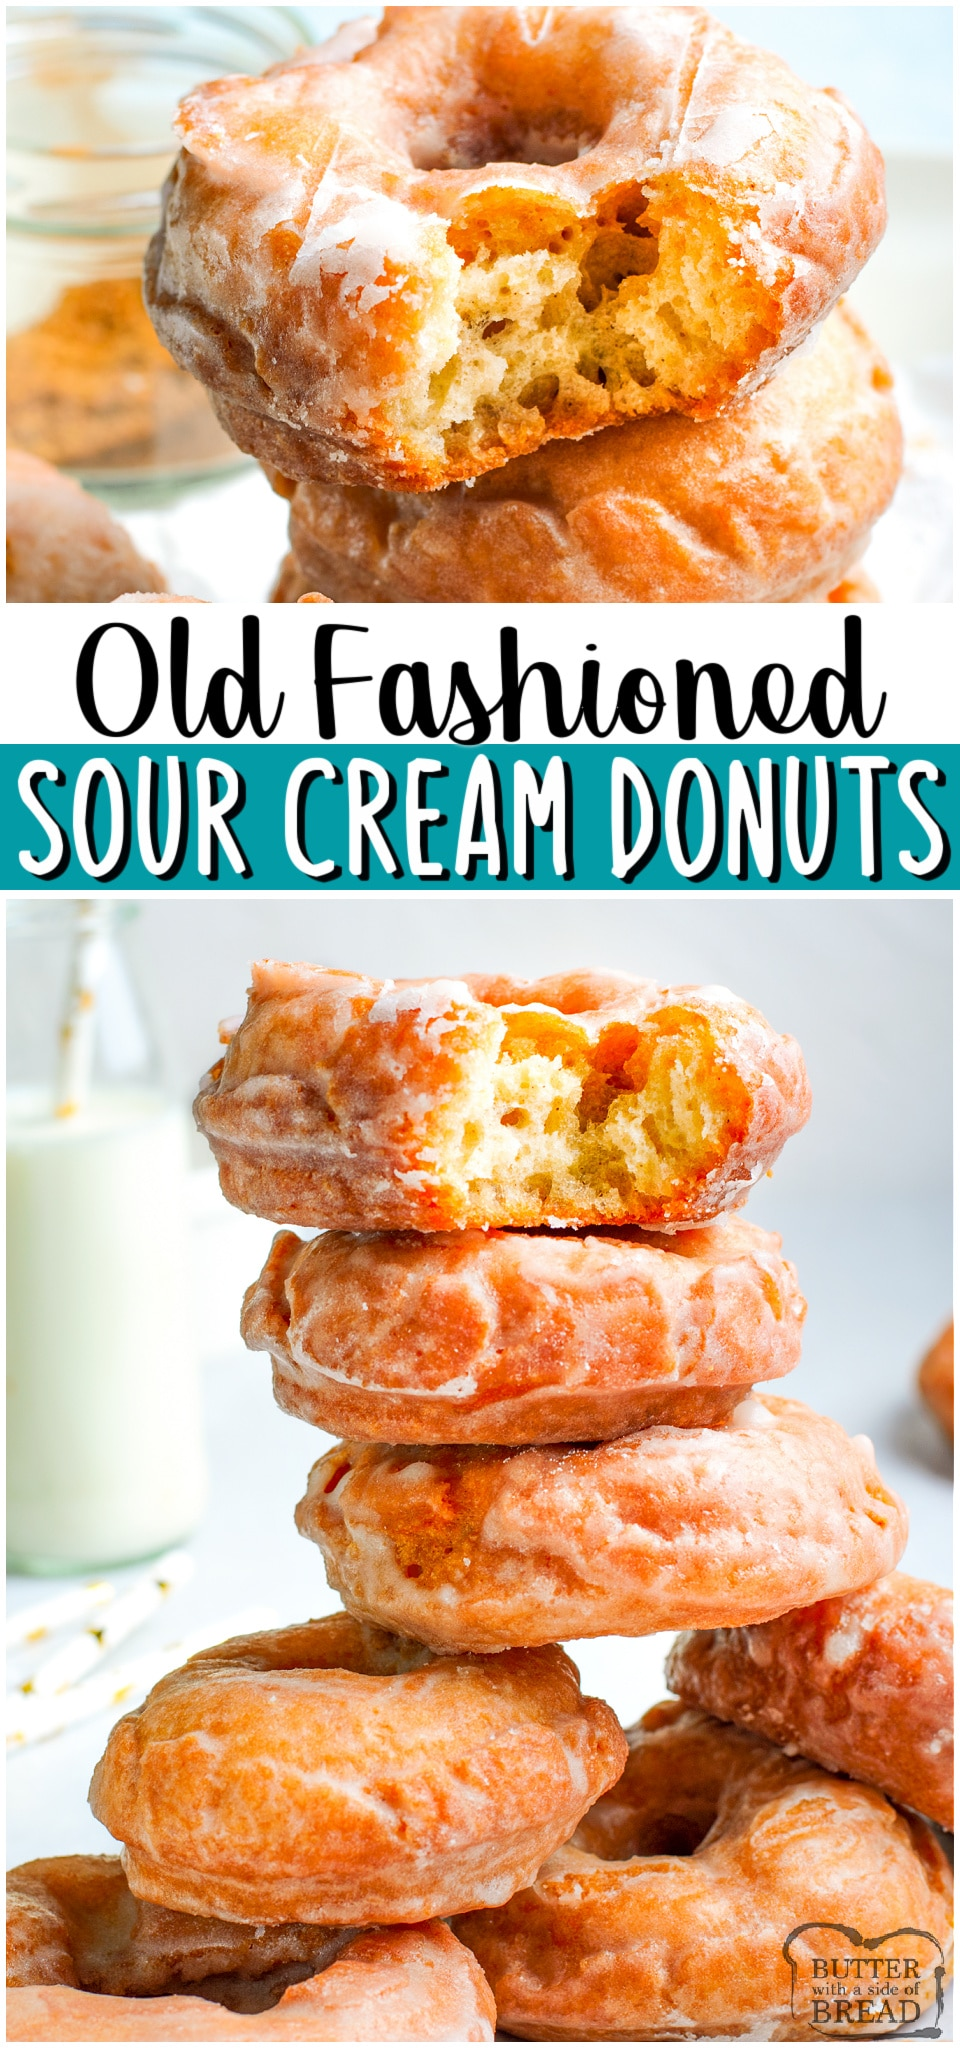 Old Fashioned Sour Cream Donuts made at home with simple ingredients! Easy donut recipe from scratch with no yeast & no rise time! Delicious, tender sour cream doughnuts with a vanilla glaze on top! #donuts #oldfashioned #sourcream #breakfast #dessert #homemade #easyrecipe from BUTTER WITH A SIDE OF BREAD